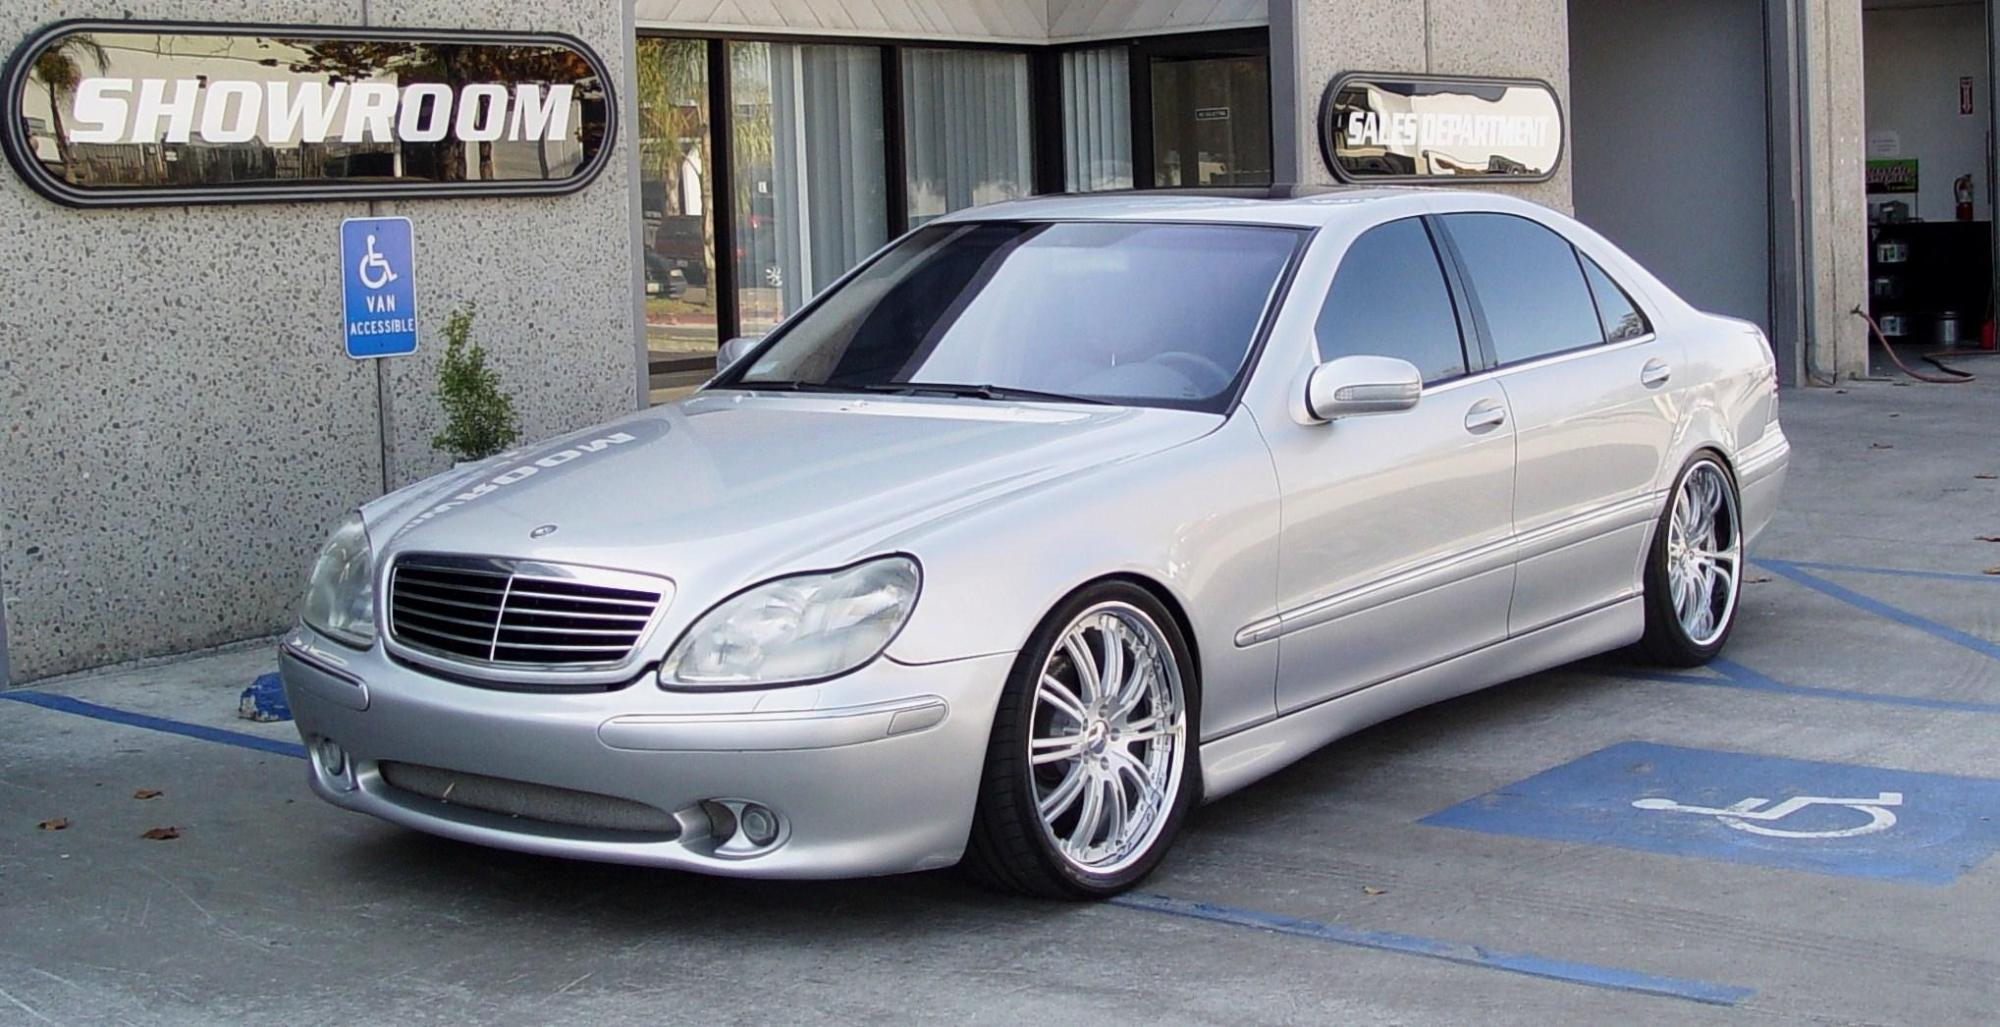 hight resolution of calivago20 2002 mercedes benz s class 38189060001 original